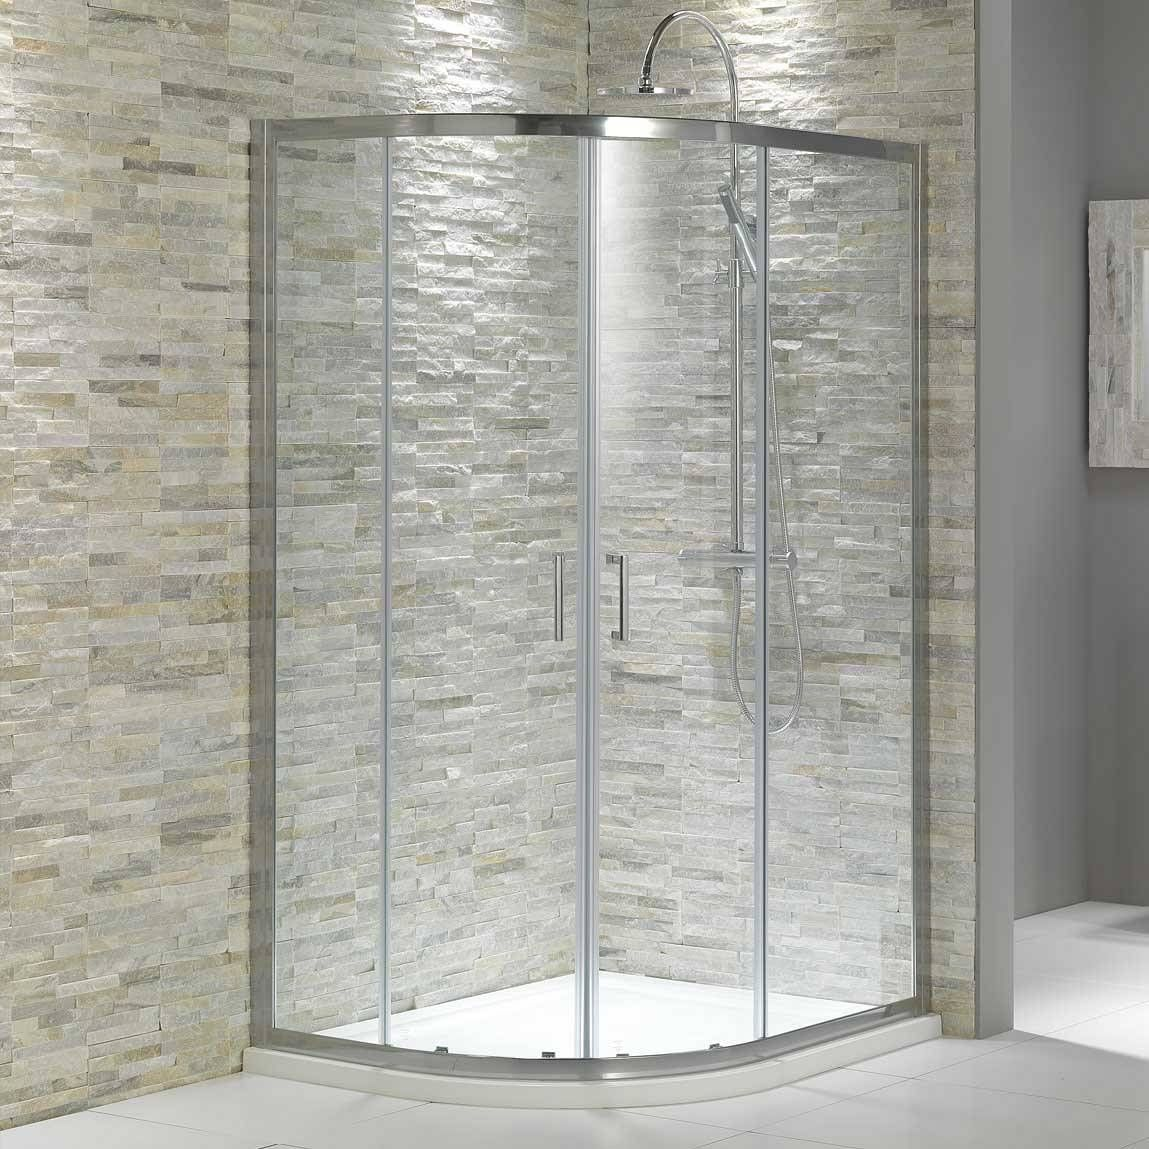 Cute 16 X 24 Tile Floor Patterns Big 18X18 Tile Flooring Solid 2X4 Suspended Ceiling Tiles 3 X 6 Beveled Subway Tile Youthful Accent Tiles Backsplash DarkAcoustic Ceiling Tiles Price V6 Quadrant Offset Shower Enclosure 1200 X 800 | Bathroom ..